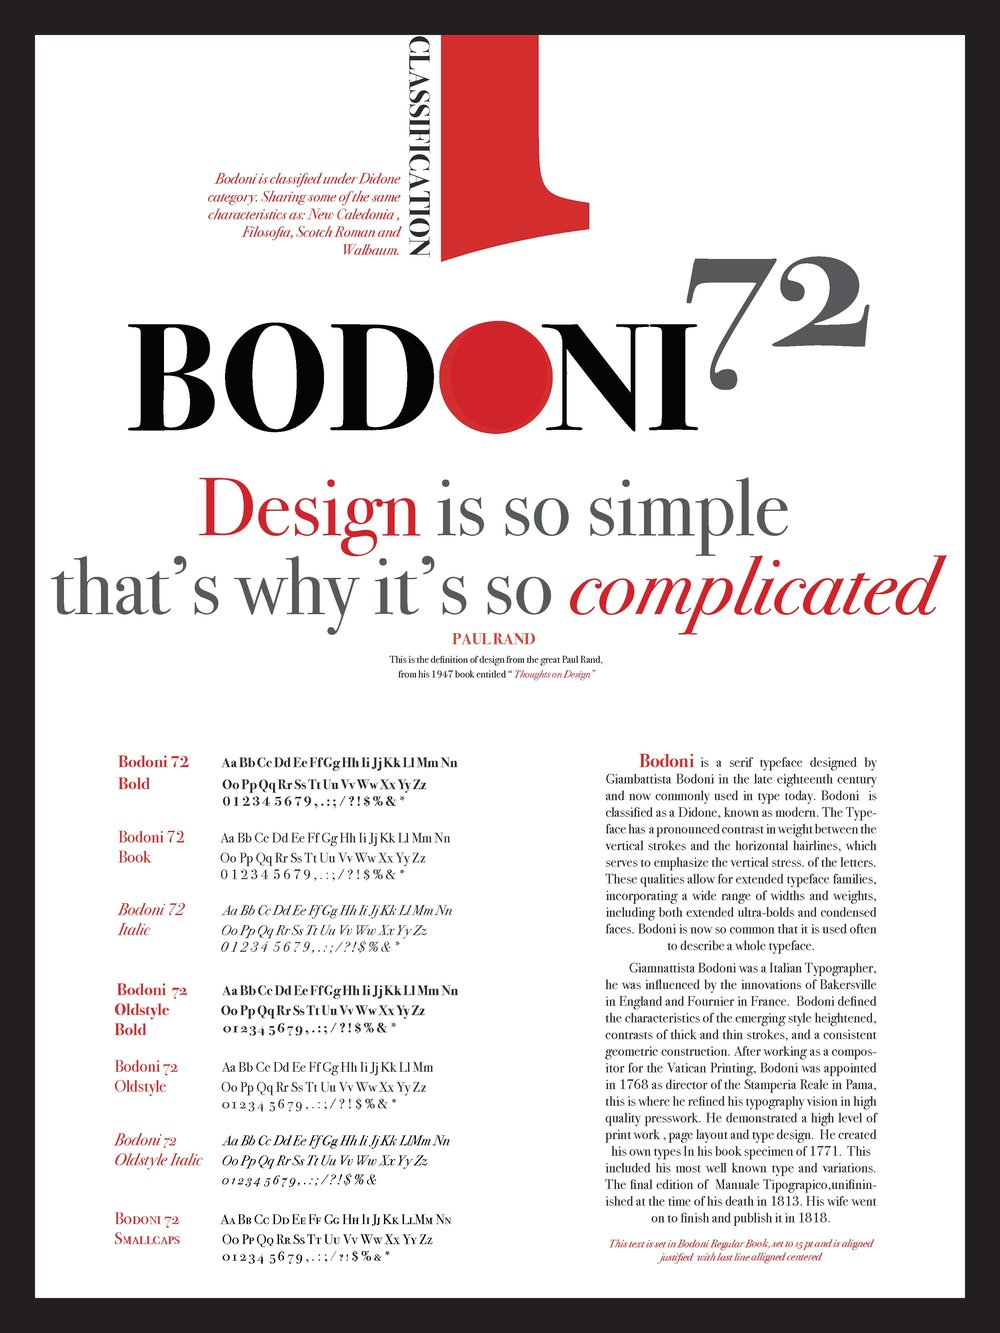 BODONI TYPE POSTER - Bodoni 72 type specimen poster, with front and back cover, and inside front cover and inside back cover poster cover.